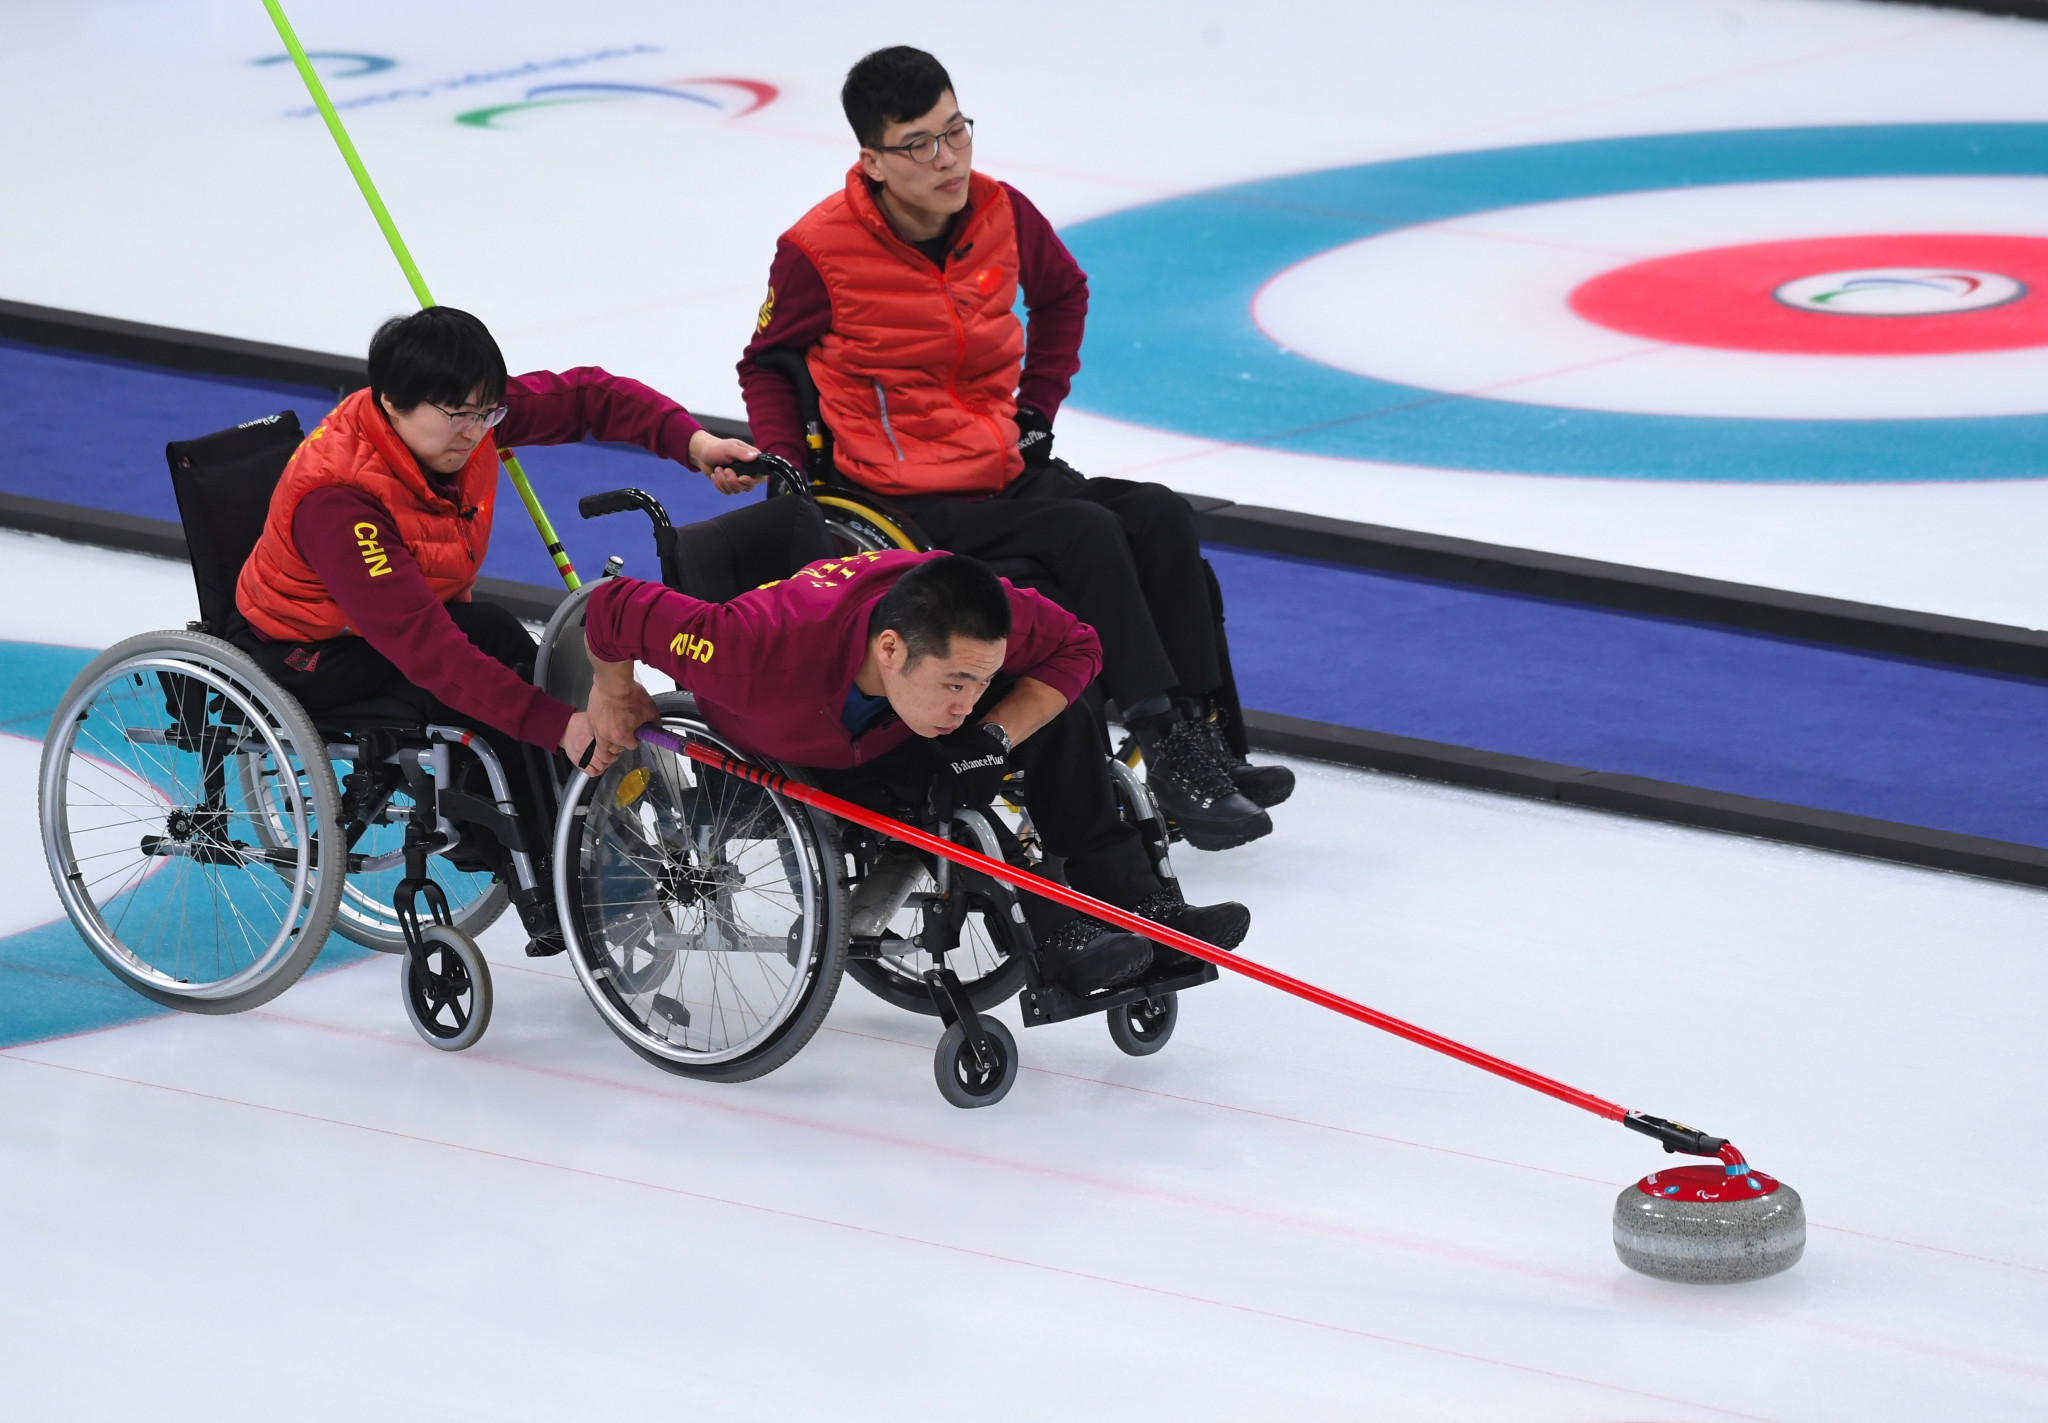 The Chinese wheelchair curling team received the IPC's award after winning their country's first Winter Paralympic medal at Pyeongchang 2018 ©Getty Images